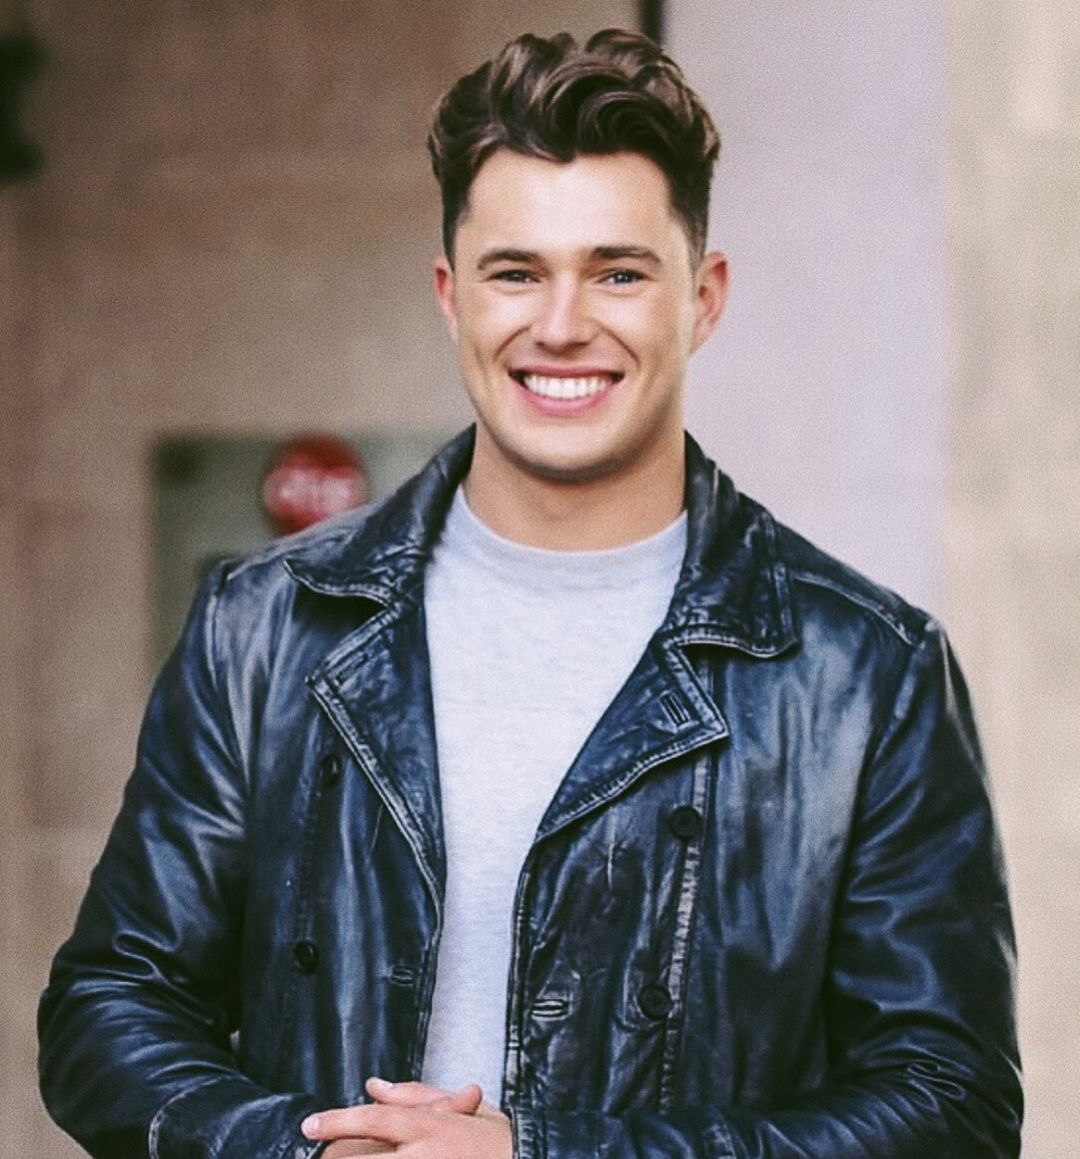 Image may contain:  Love Island 2019 contestants, Love Island, 2019, now, job, Instagram, updates, news, latest, series five, Curtis Pritchard, Leather Jacket, Human, Person, Coat, Apparel, Clothing, Jacket